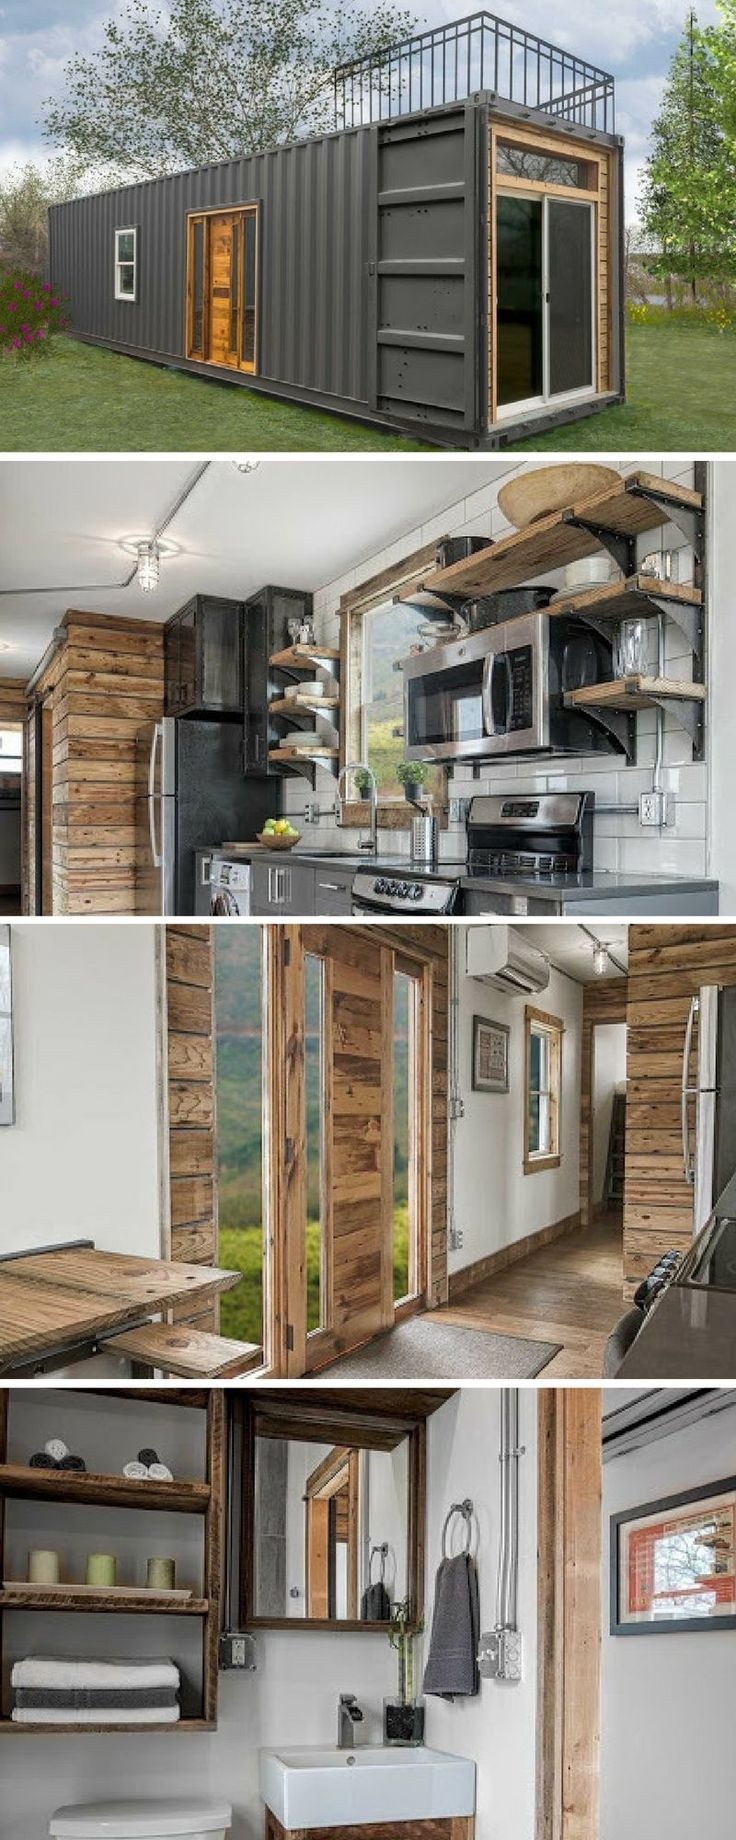 331 best Container House images on Pinterest | Container houses, Shipping  containers and Container architecture